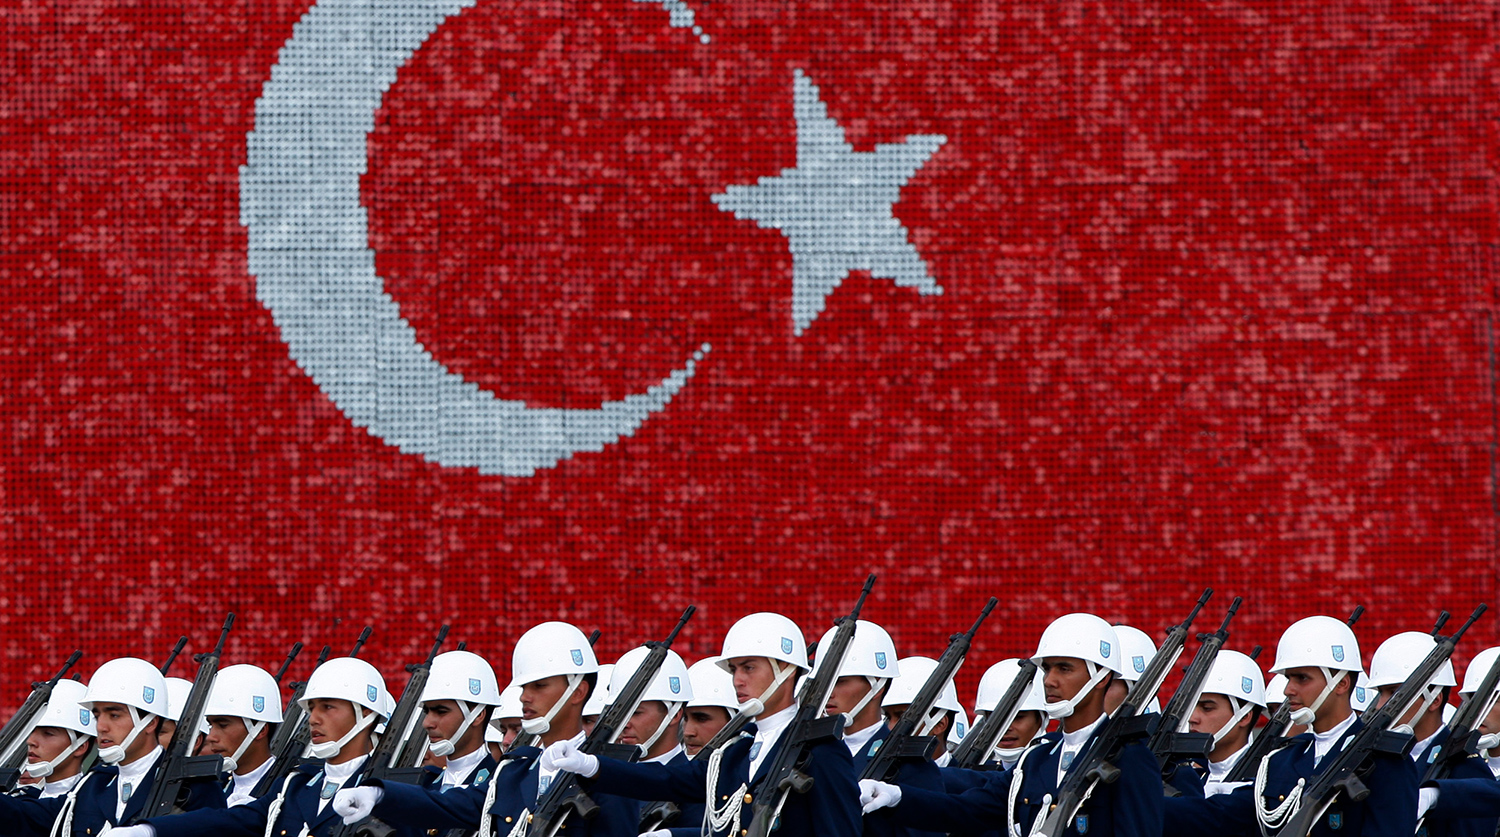 Turkish air force cadets march during a graduation ceremony for 197 cadets at the Air Force war academy in Istanbul